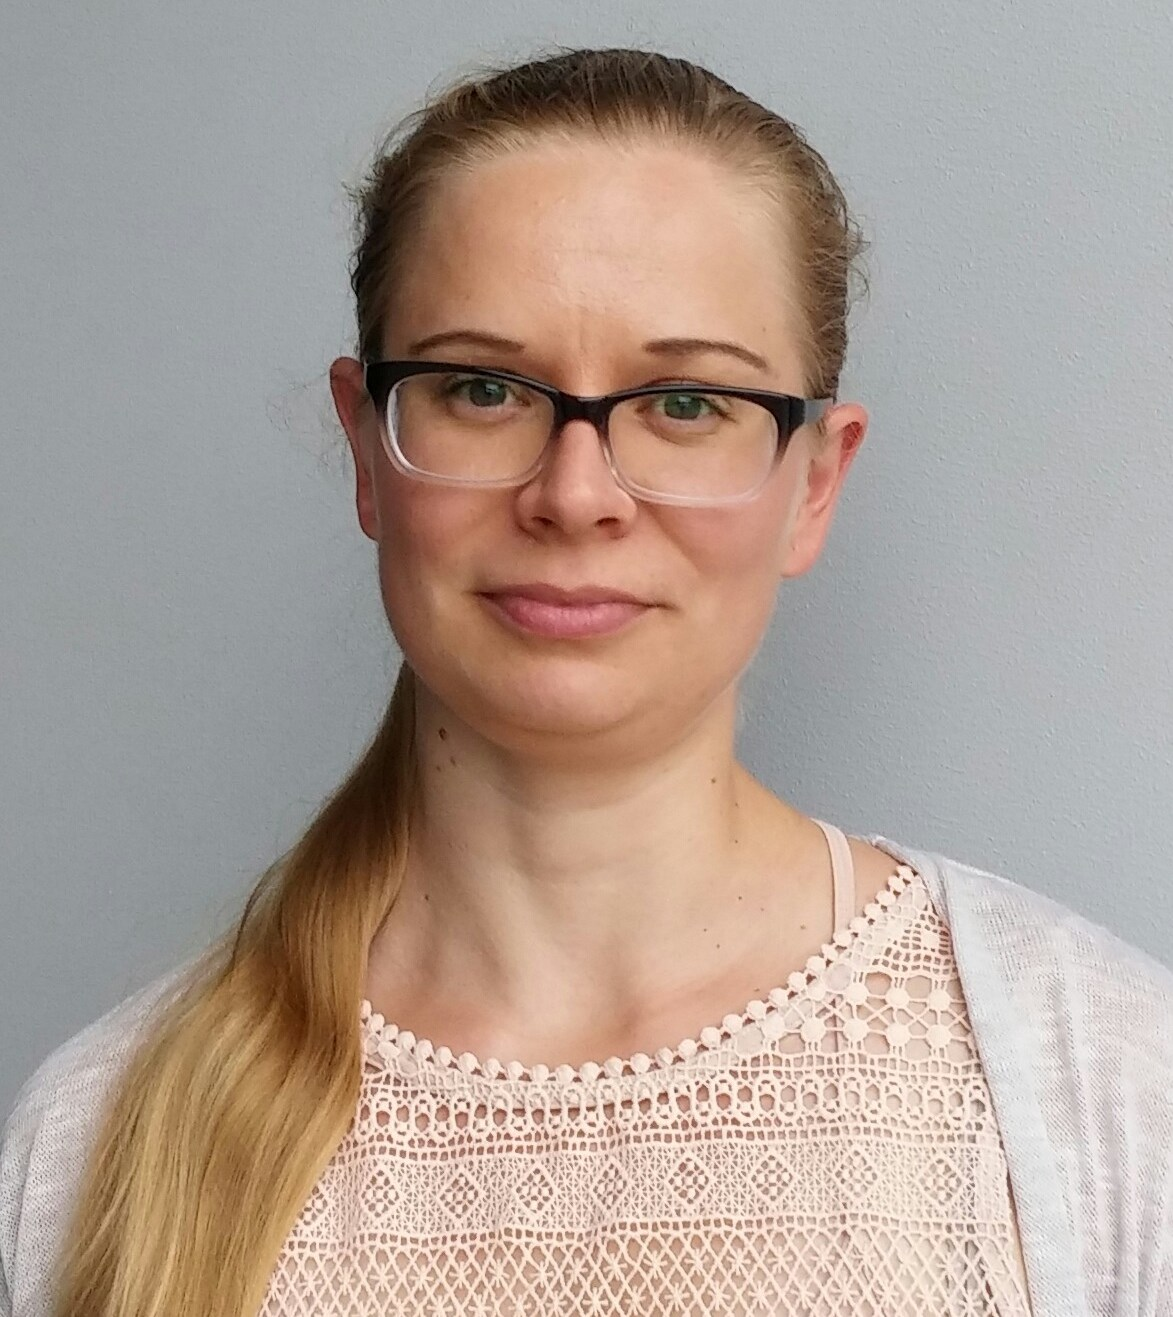 Photo of Minna Santalahti